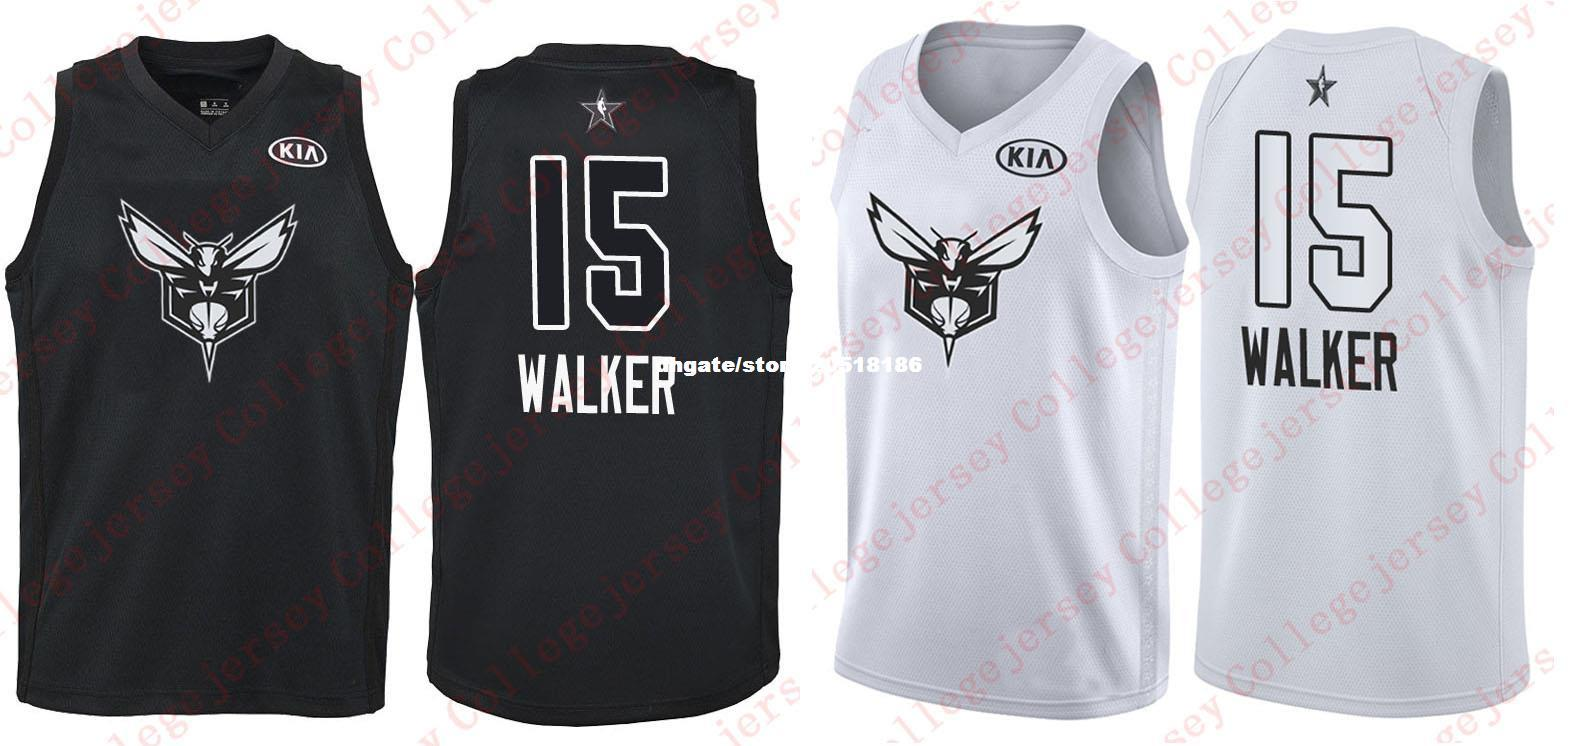 97964c1d5260 Compre Cheap 2018 All Star   15 Kemba Walker Jersey Hombres Blanco Negro  Baloncesto Jerseys A  17.19 Del Nfljersey1